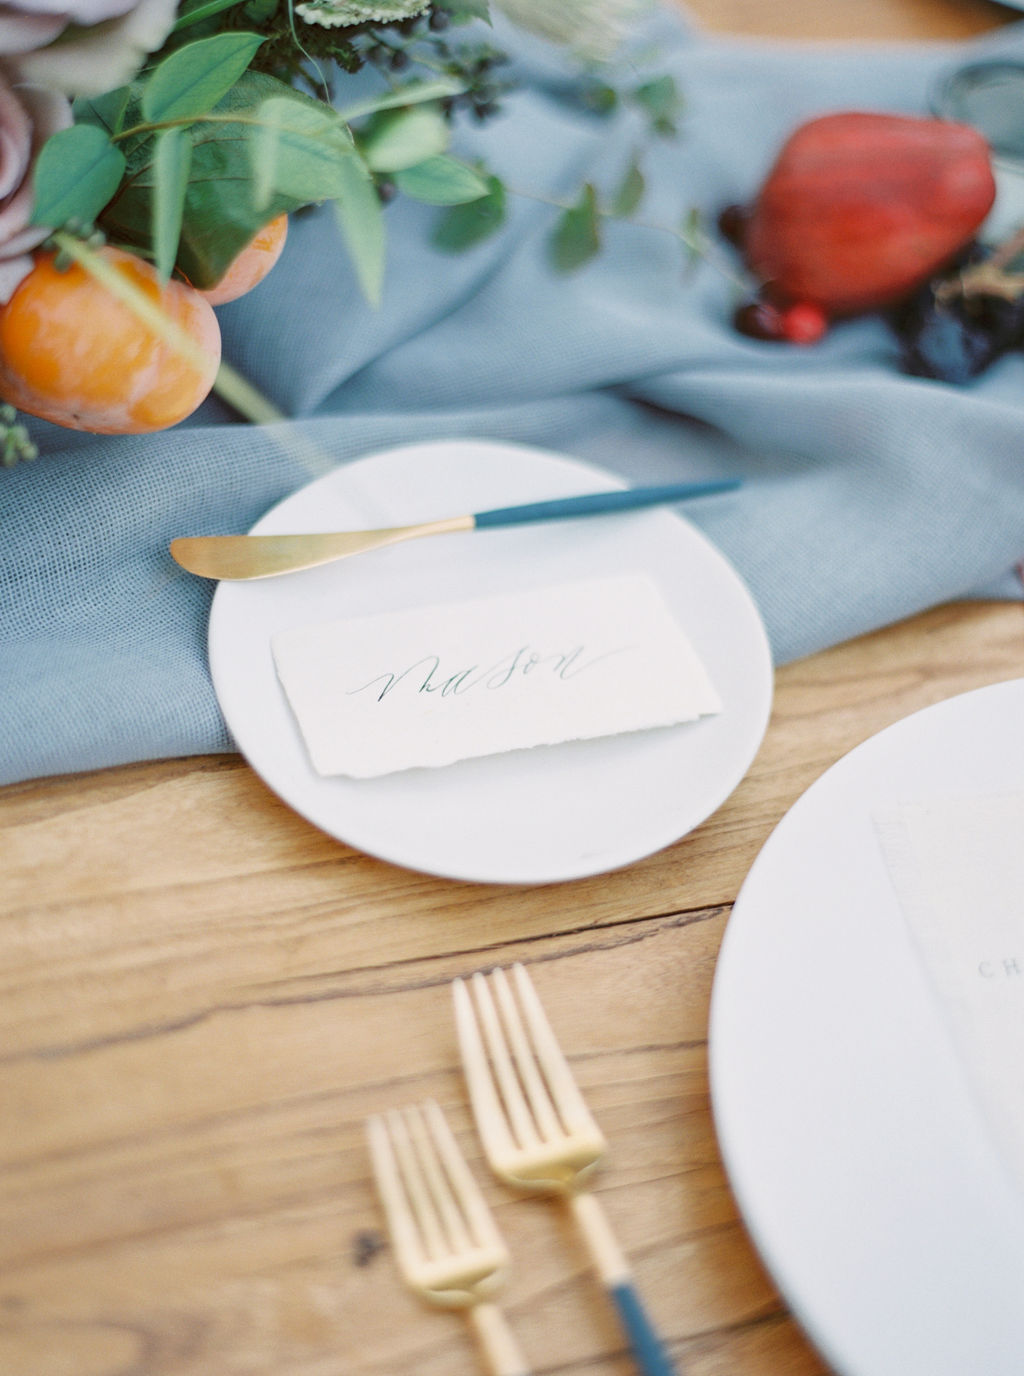 Table Details and Autumn Fruit Styling by Finding Flora